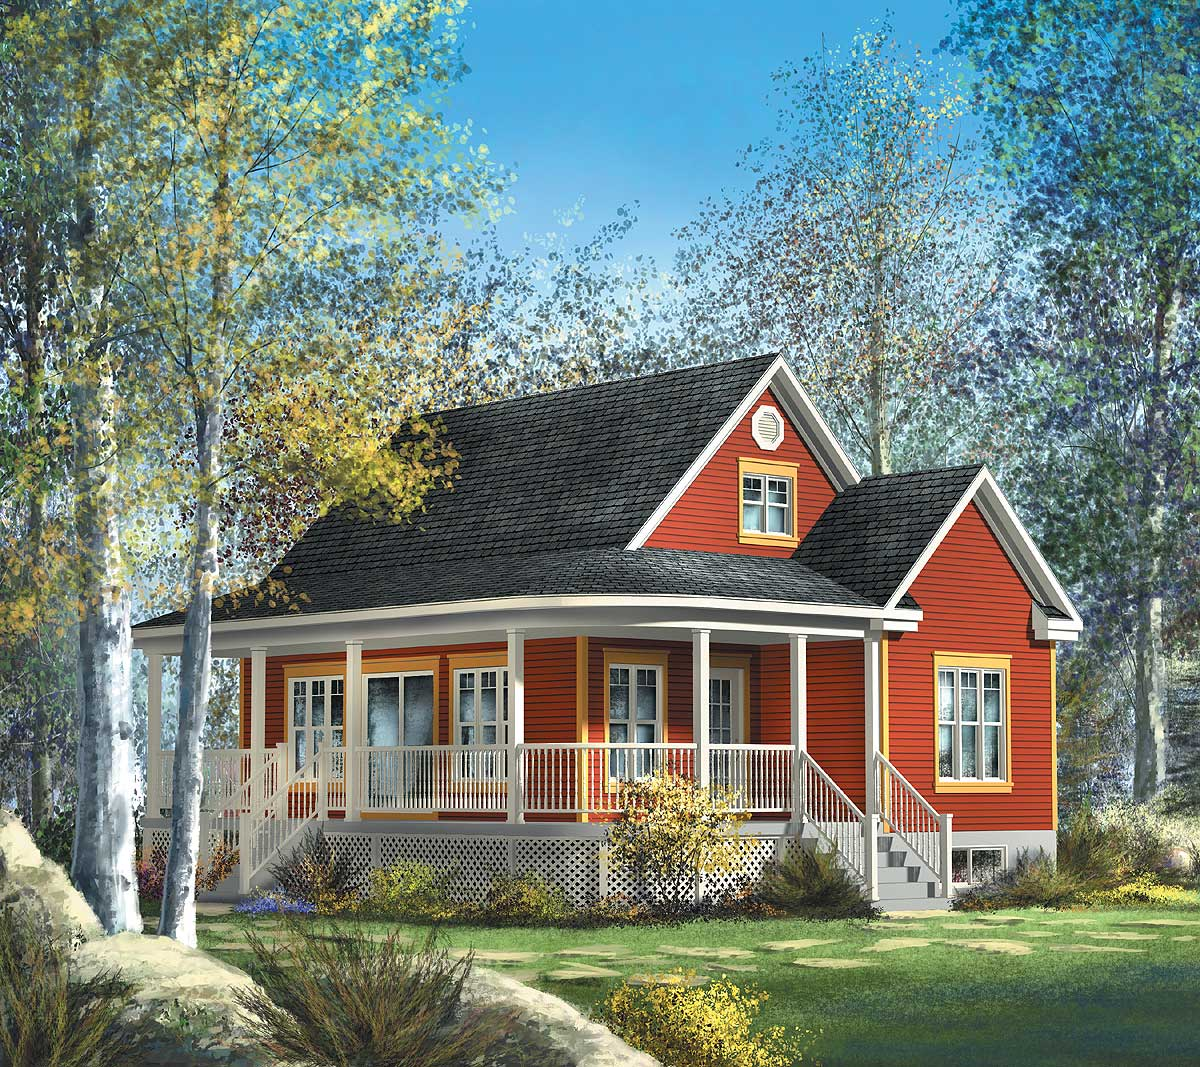 Cute Country Cottage - 80559PM